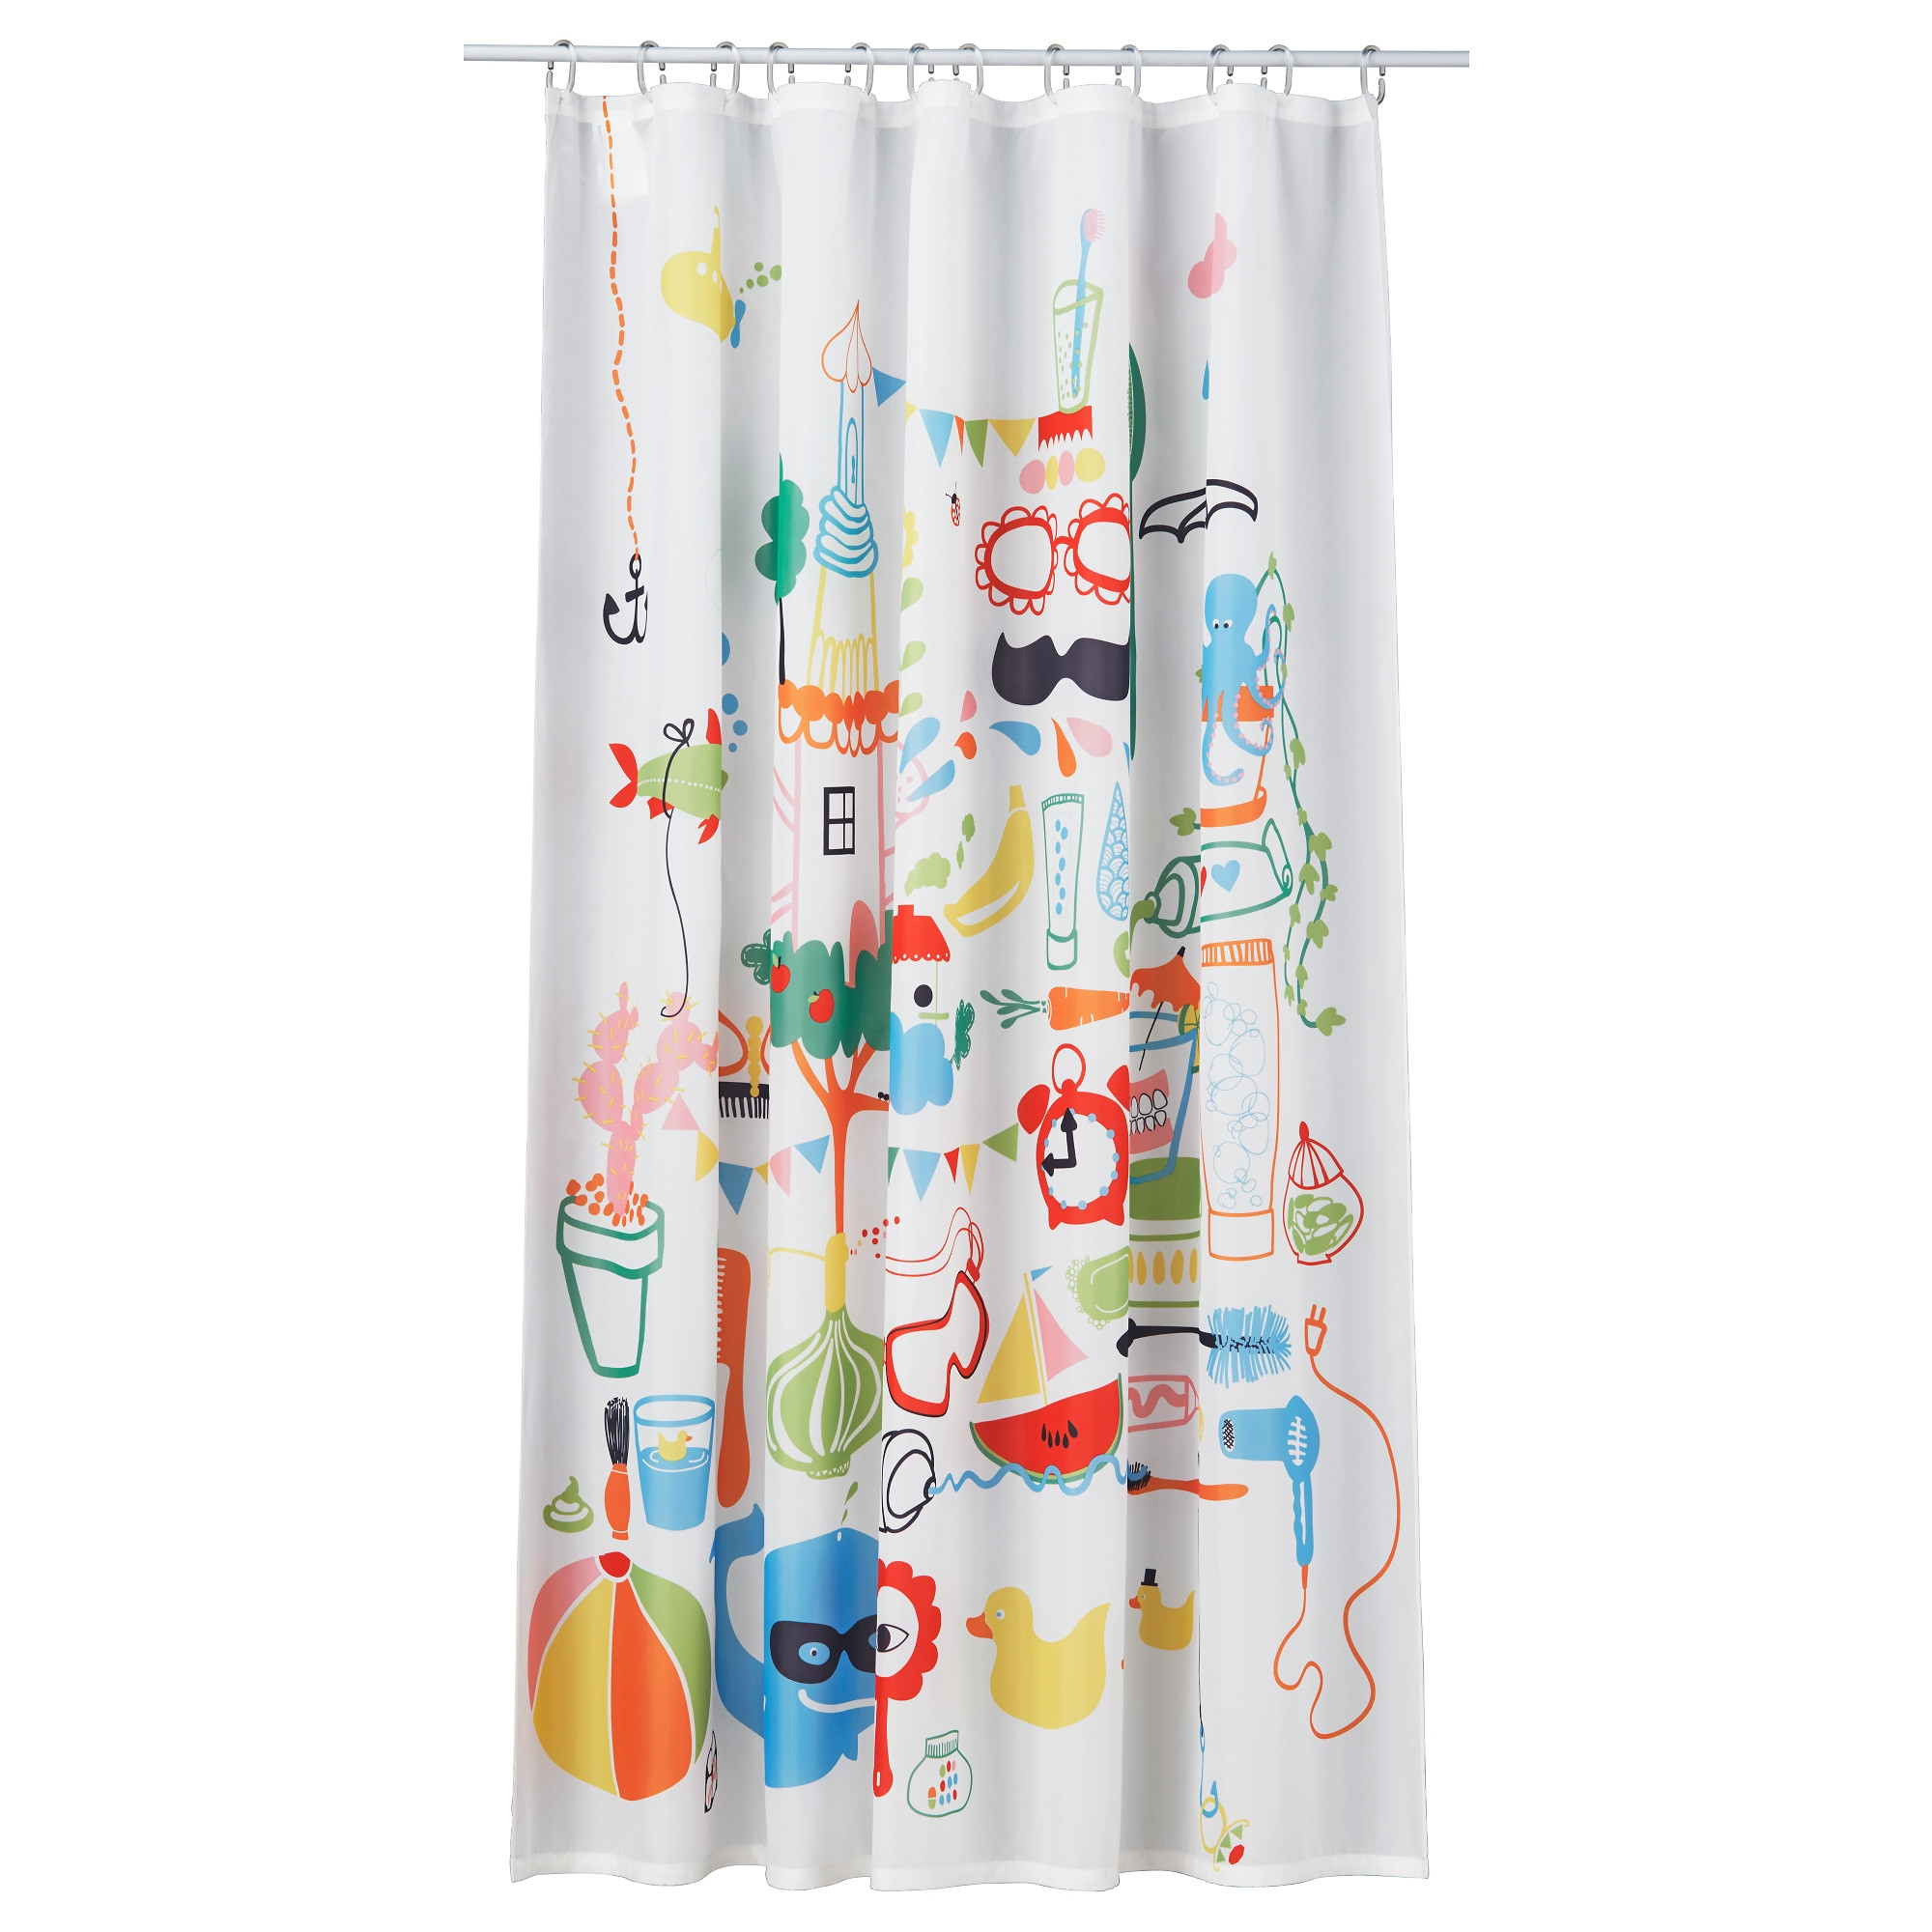 BADBÄCK Shower Curtain IKEA